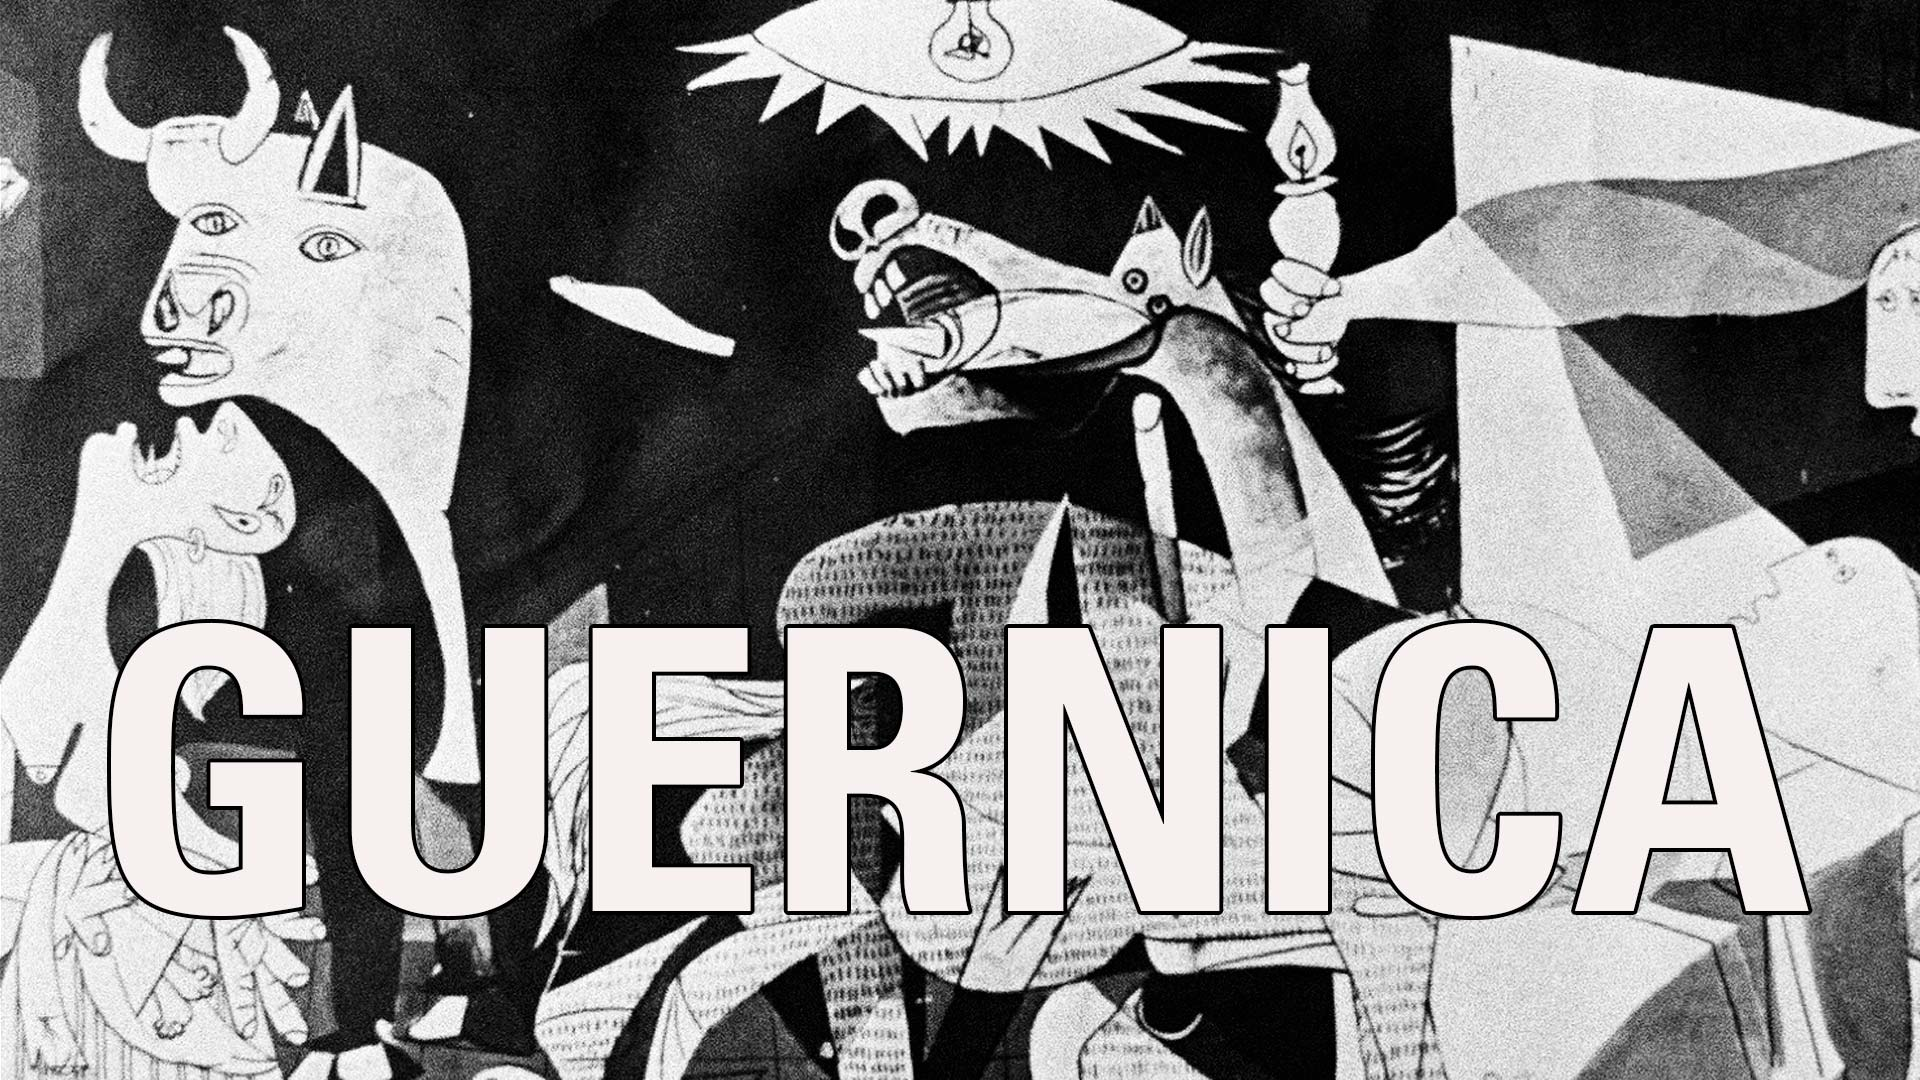 Guernica - image